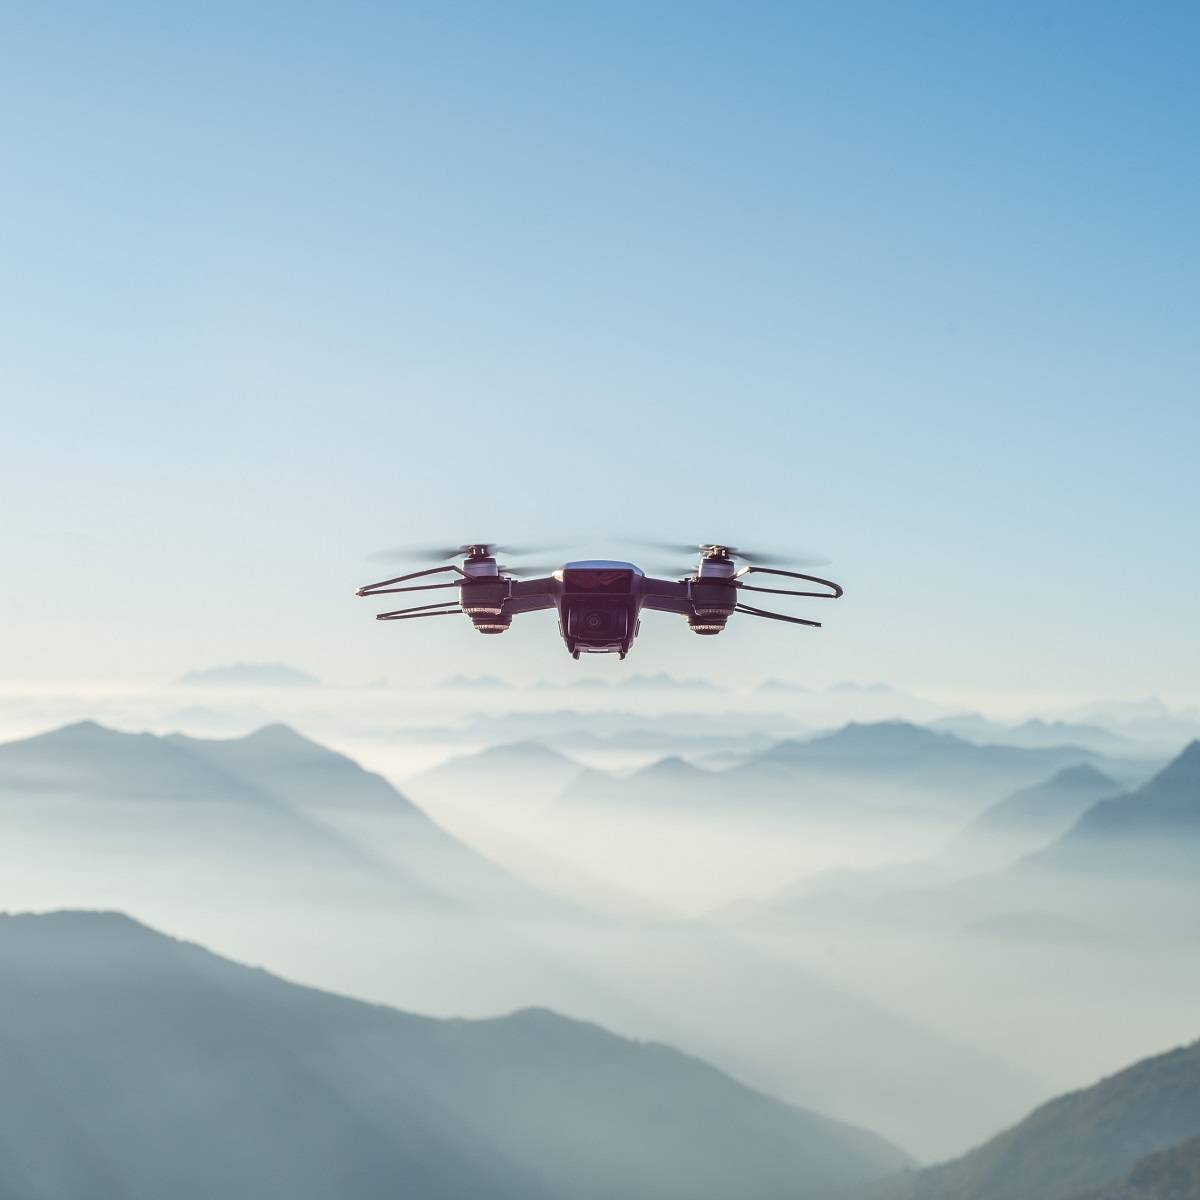 A drone flying over misty mountains